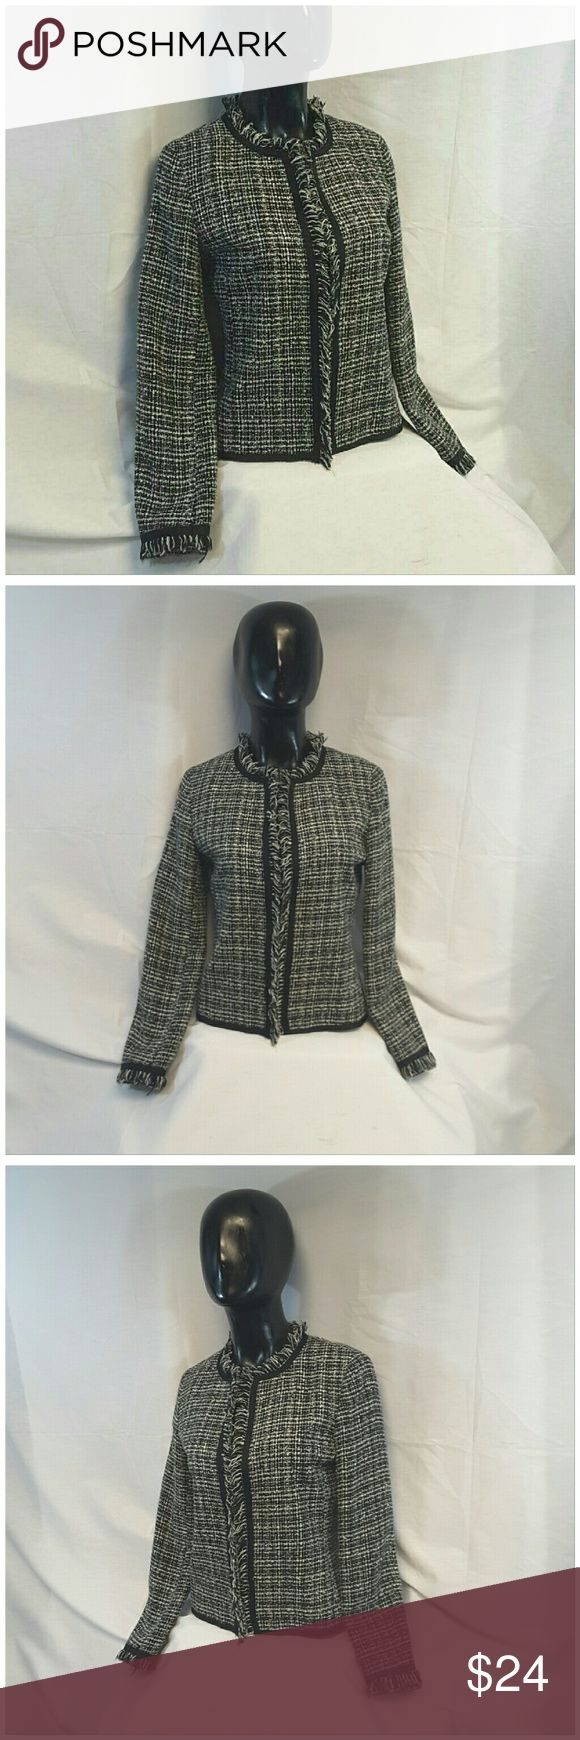 "NEW YORK N CO Frayed Cardigan/Blazer size 2 NEW YORK N CO,  Frayed Cardigan/Blazer, size 2 See Measurements, hidden bar none hook front closure, frayed collar sleeve hem and center front, trimmed all around in black, fully lined, 94% acrylic, 6% wool, lining 1005 polyester, approximate measurements: 21 1/2"" length shoulder to hem, 15 1/2"" bust laying flat,  22 1/2c sleeves, 14"" width shoulder seam to shoulder seam. ADD TO A BUNDLE! 20% BUNDLE DISCOUNT New York & Company Jackets & Coats"